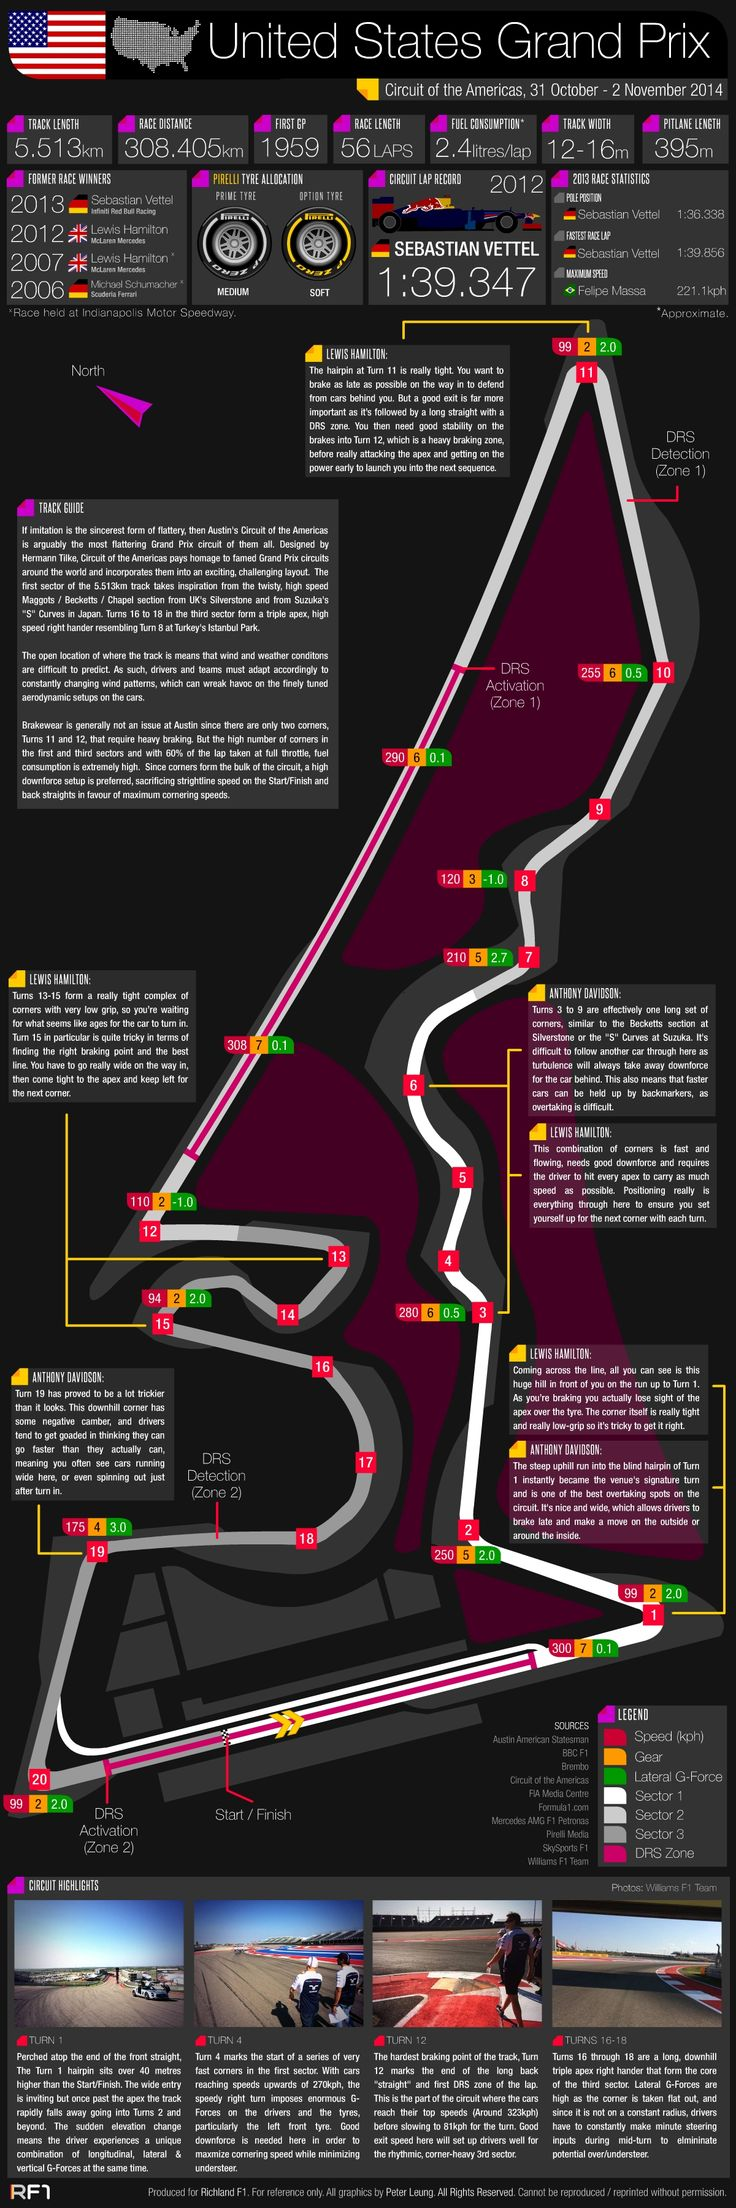 ♠ Grand Prix Guide – 2014 US Grand Prix #F1 #Infographic #Data